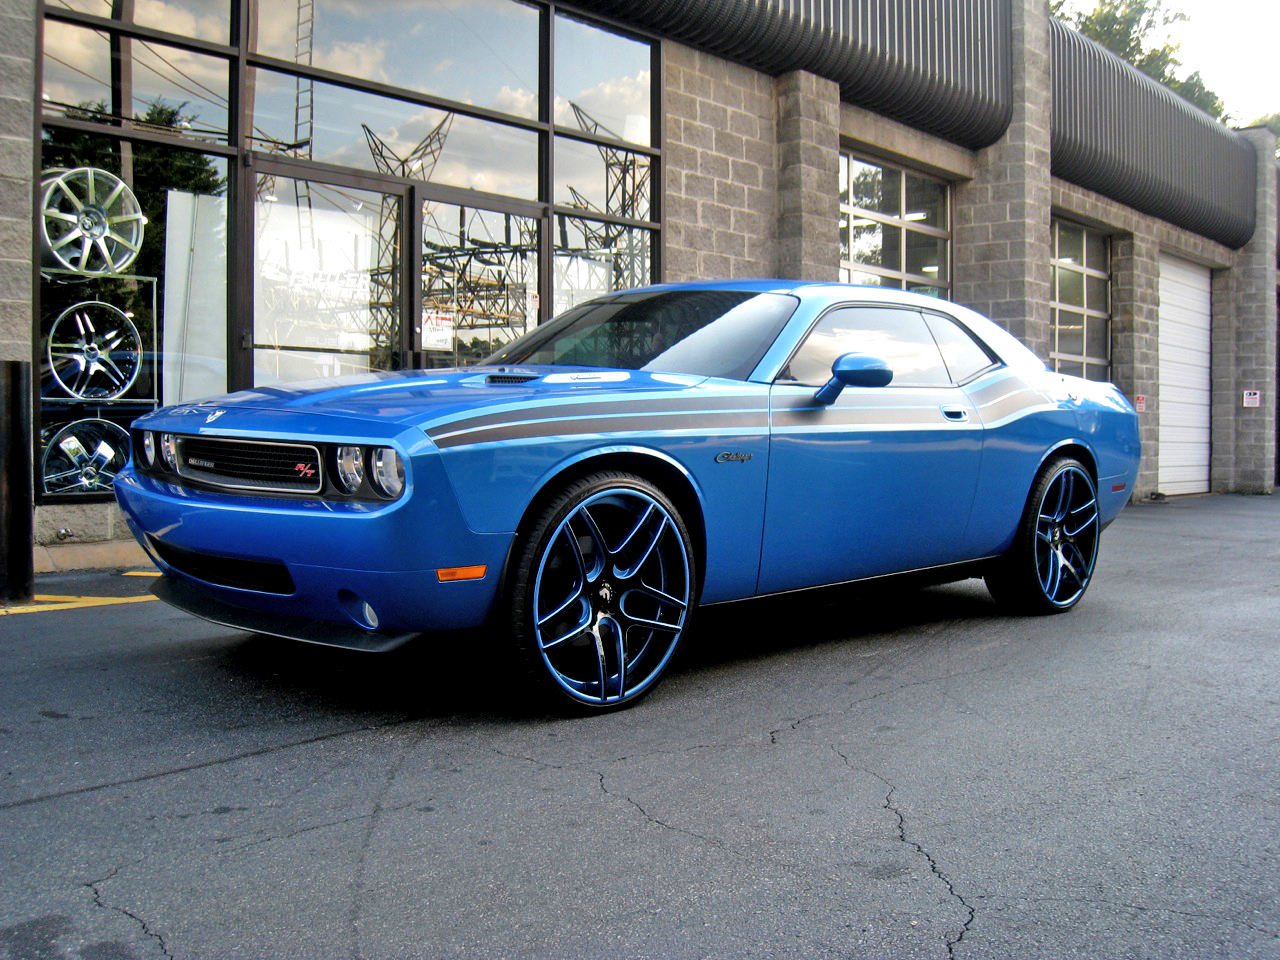 Dodge Challenger 24 Inch Rims >> IMG_0039